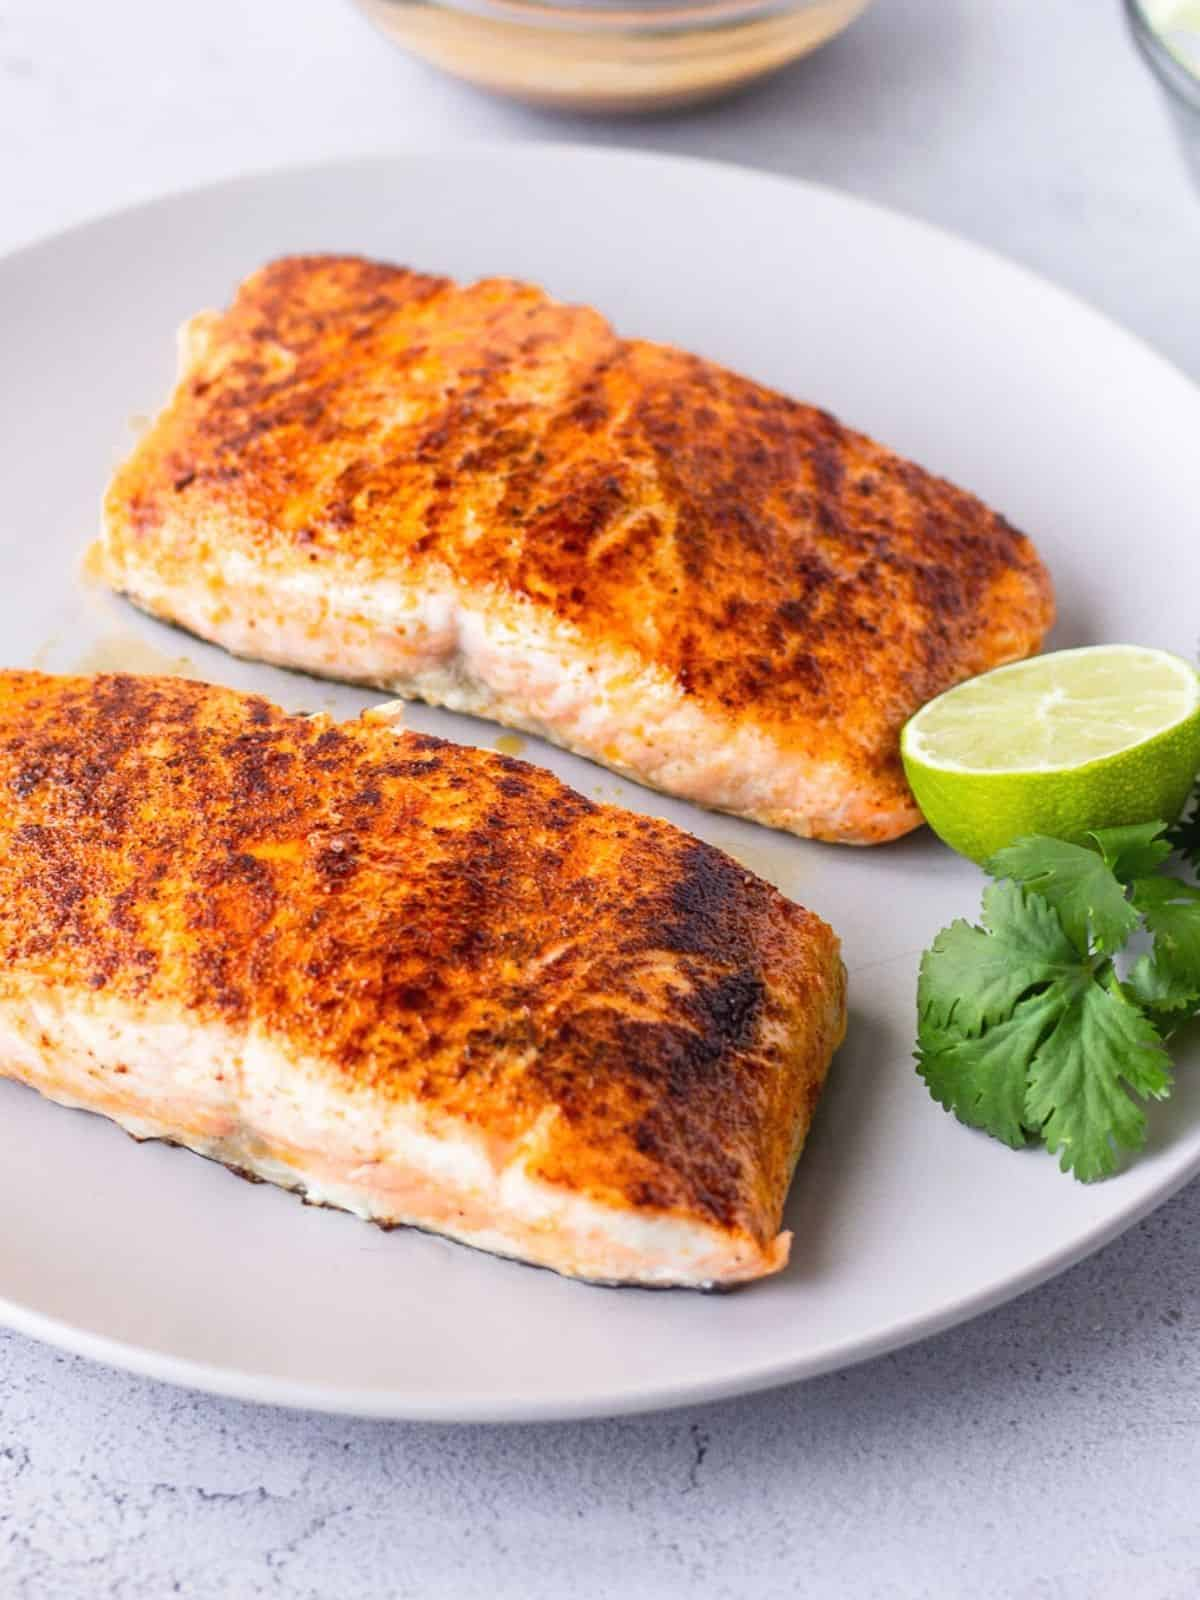 Two pieces of cooked salmon filets on a white plate.